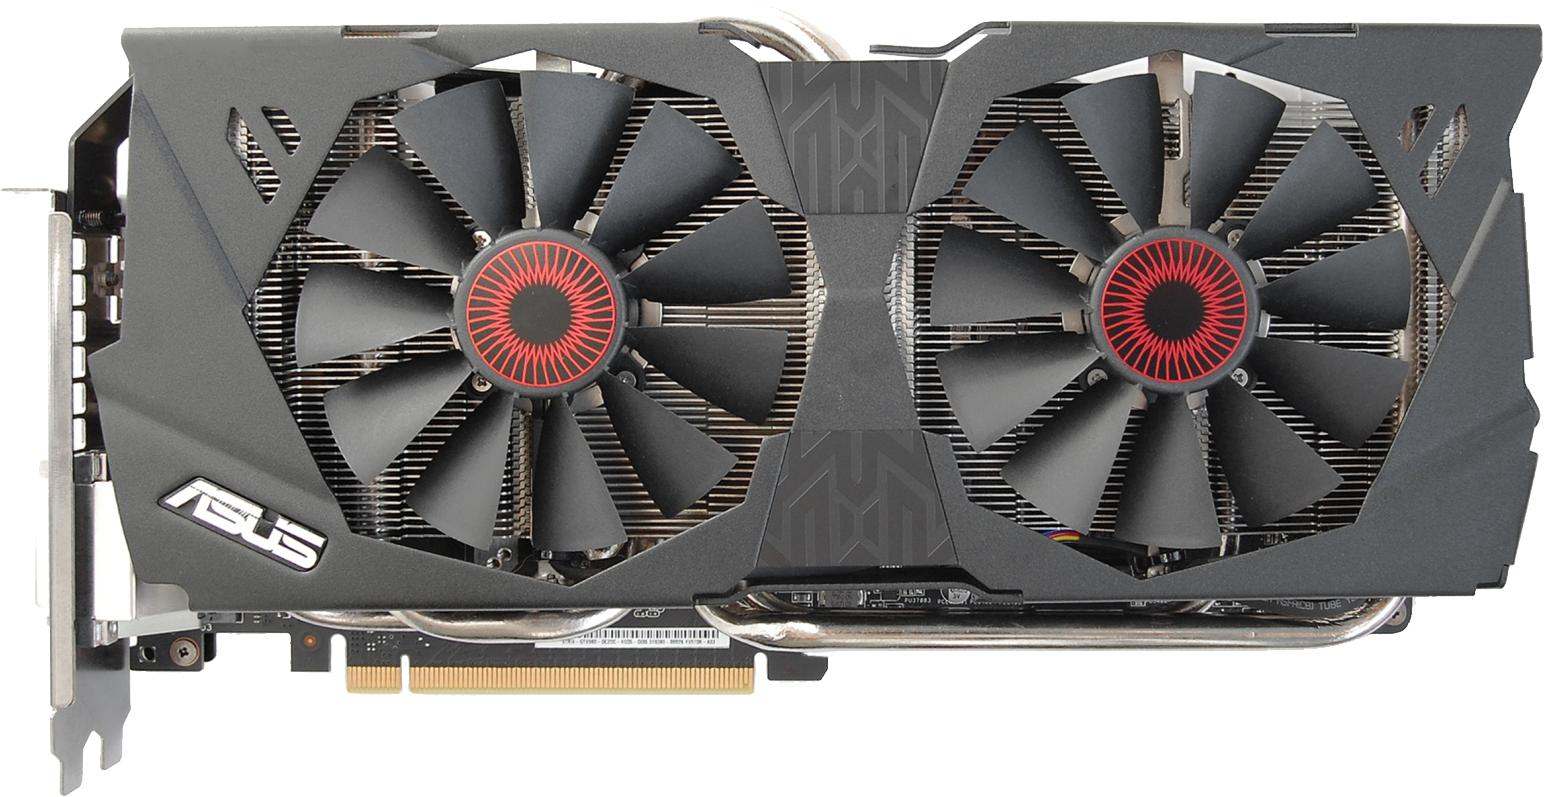 Asus Strix GeForce GTX 980 DirectCU II